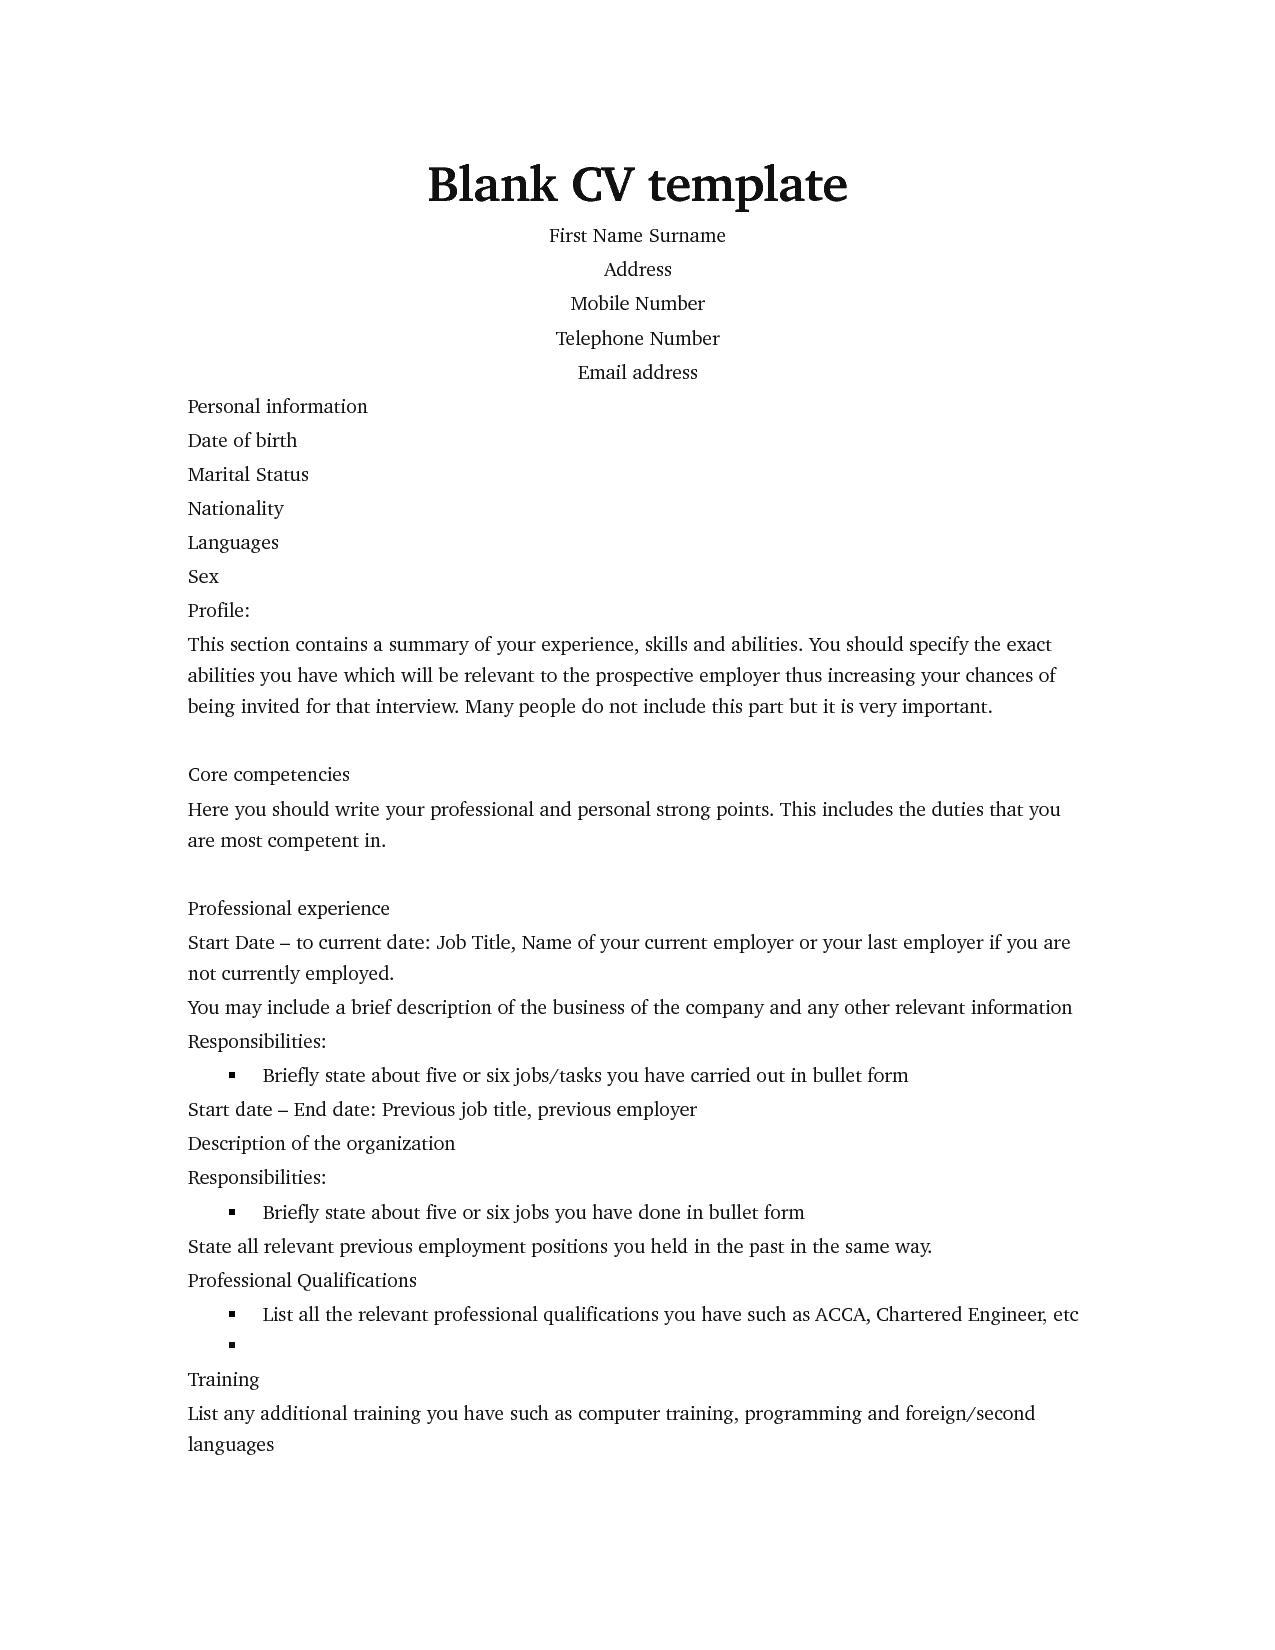 Curriculum Vitae Templates For Graduate Students